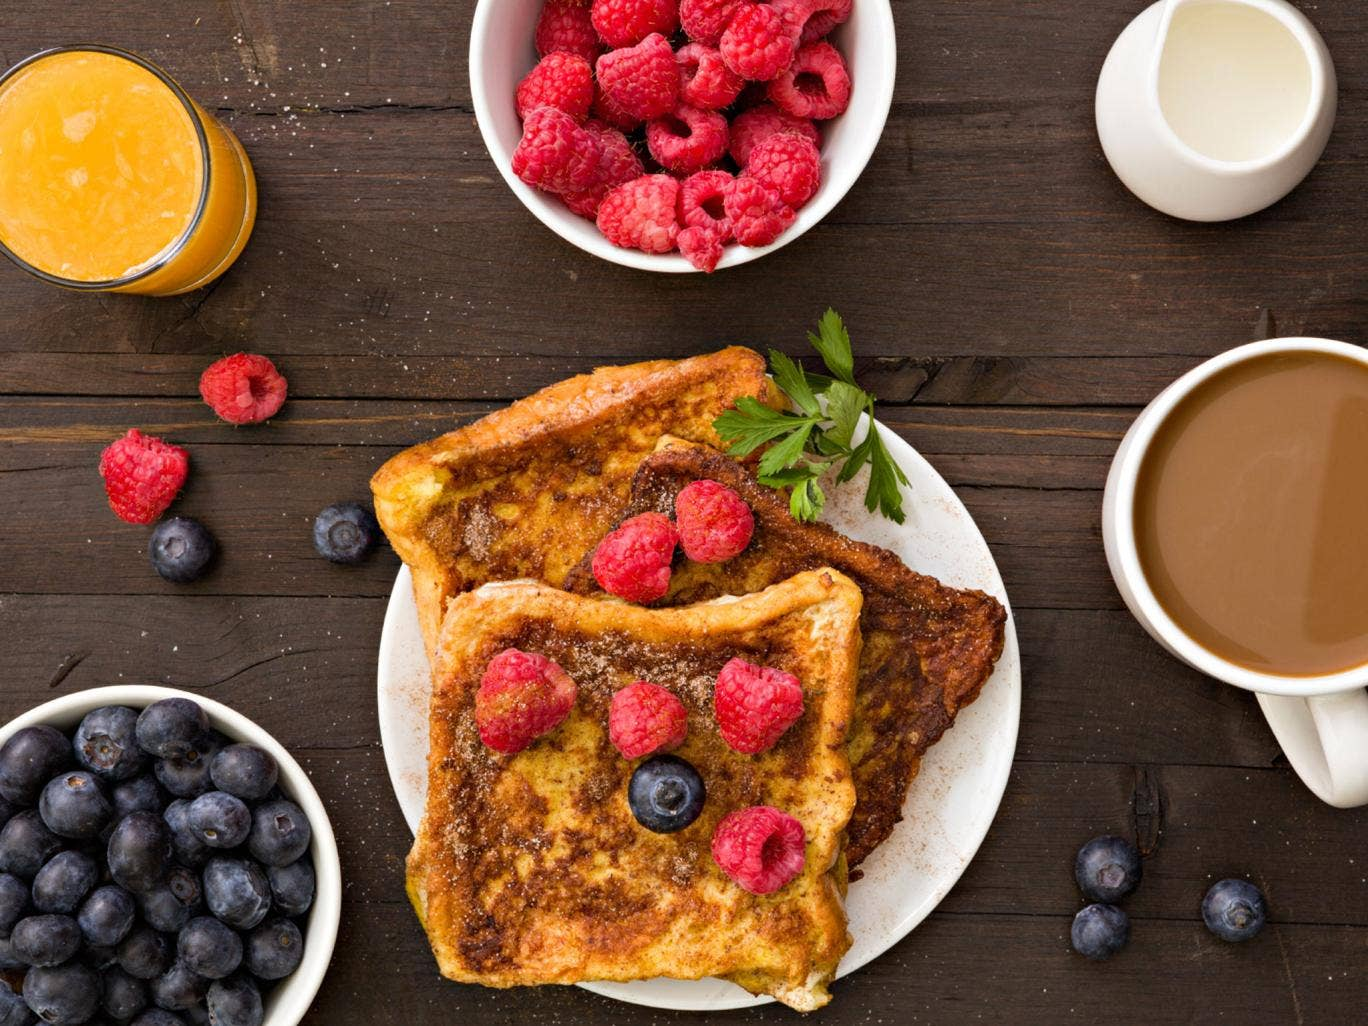 News: Study Suggests Protein-Rich Breakfast Could Prevent Overeating Later